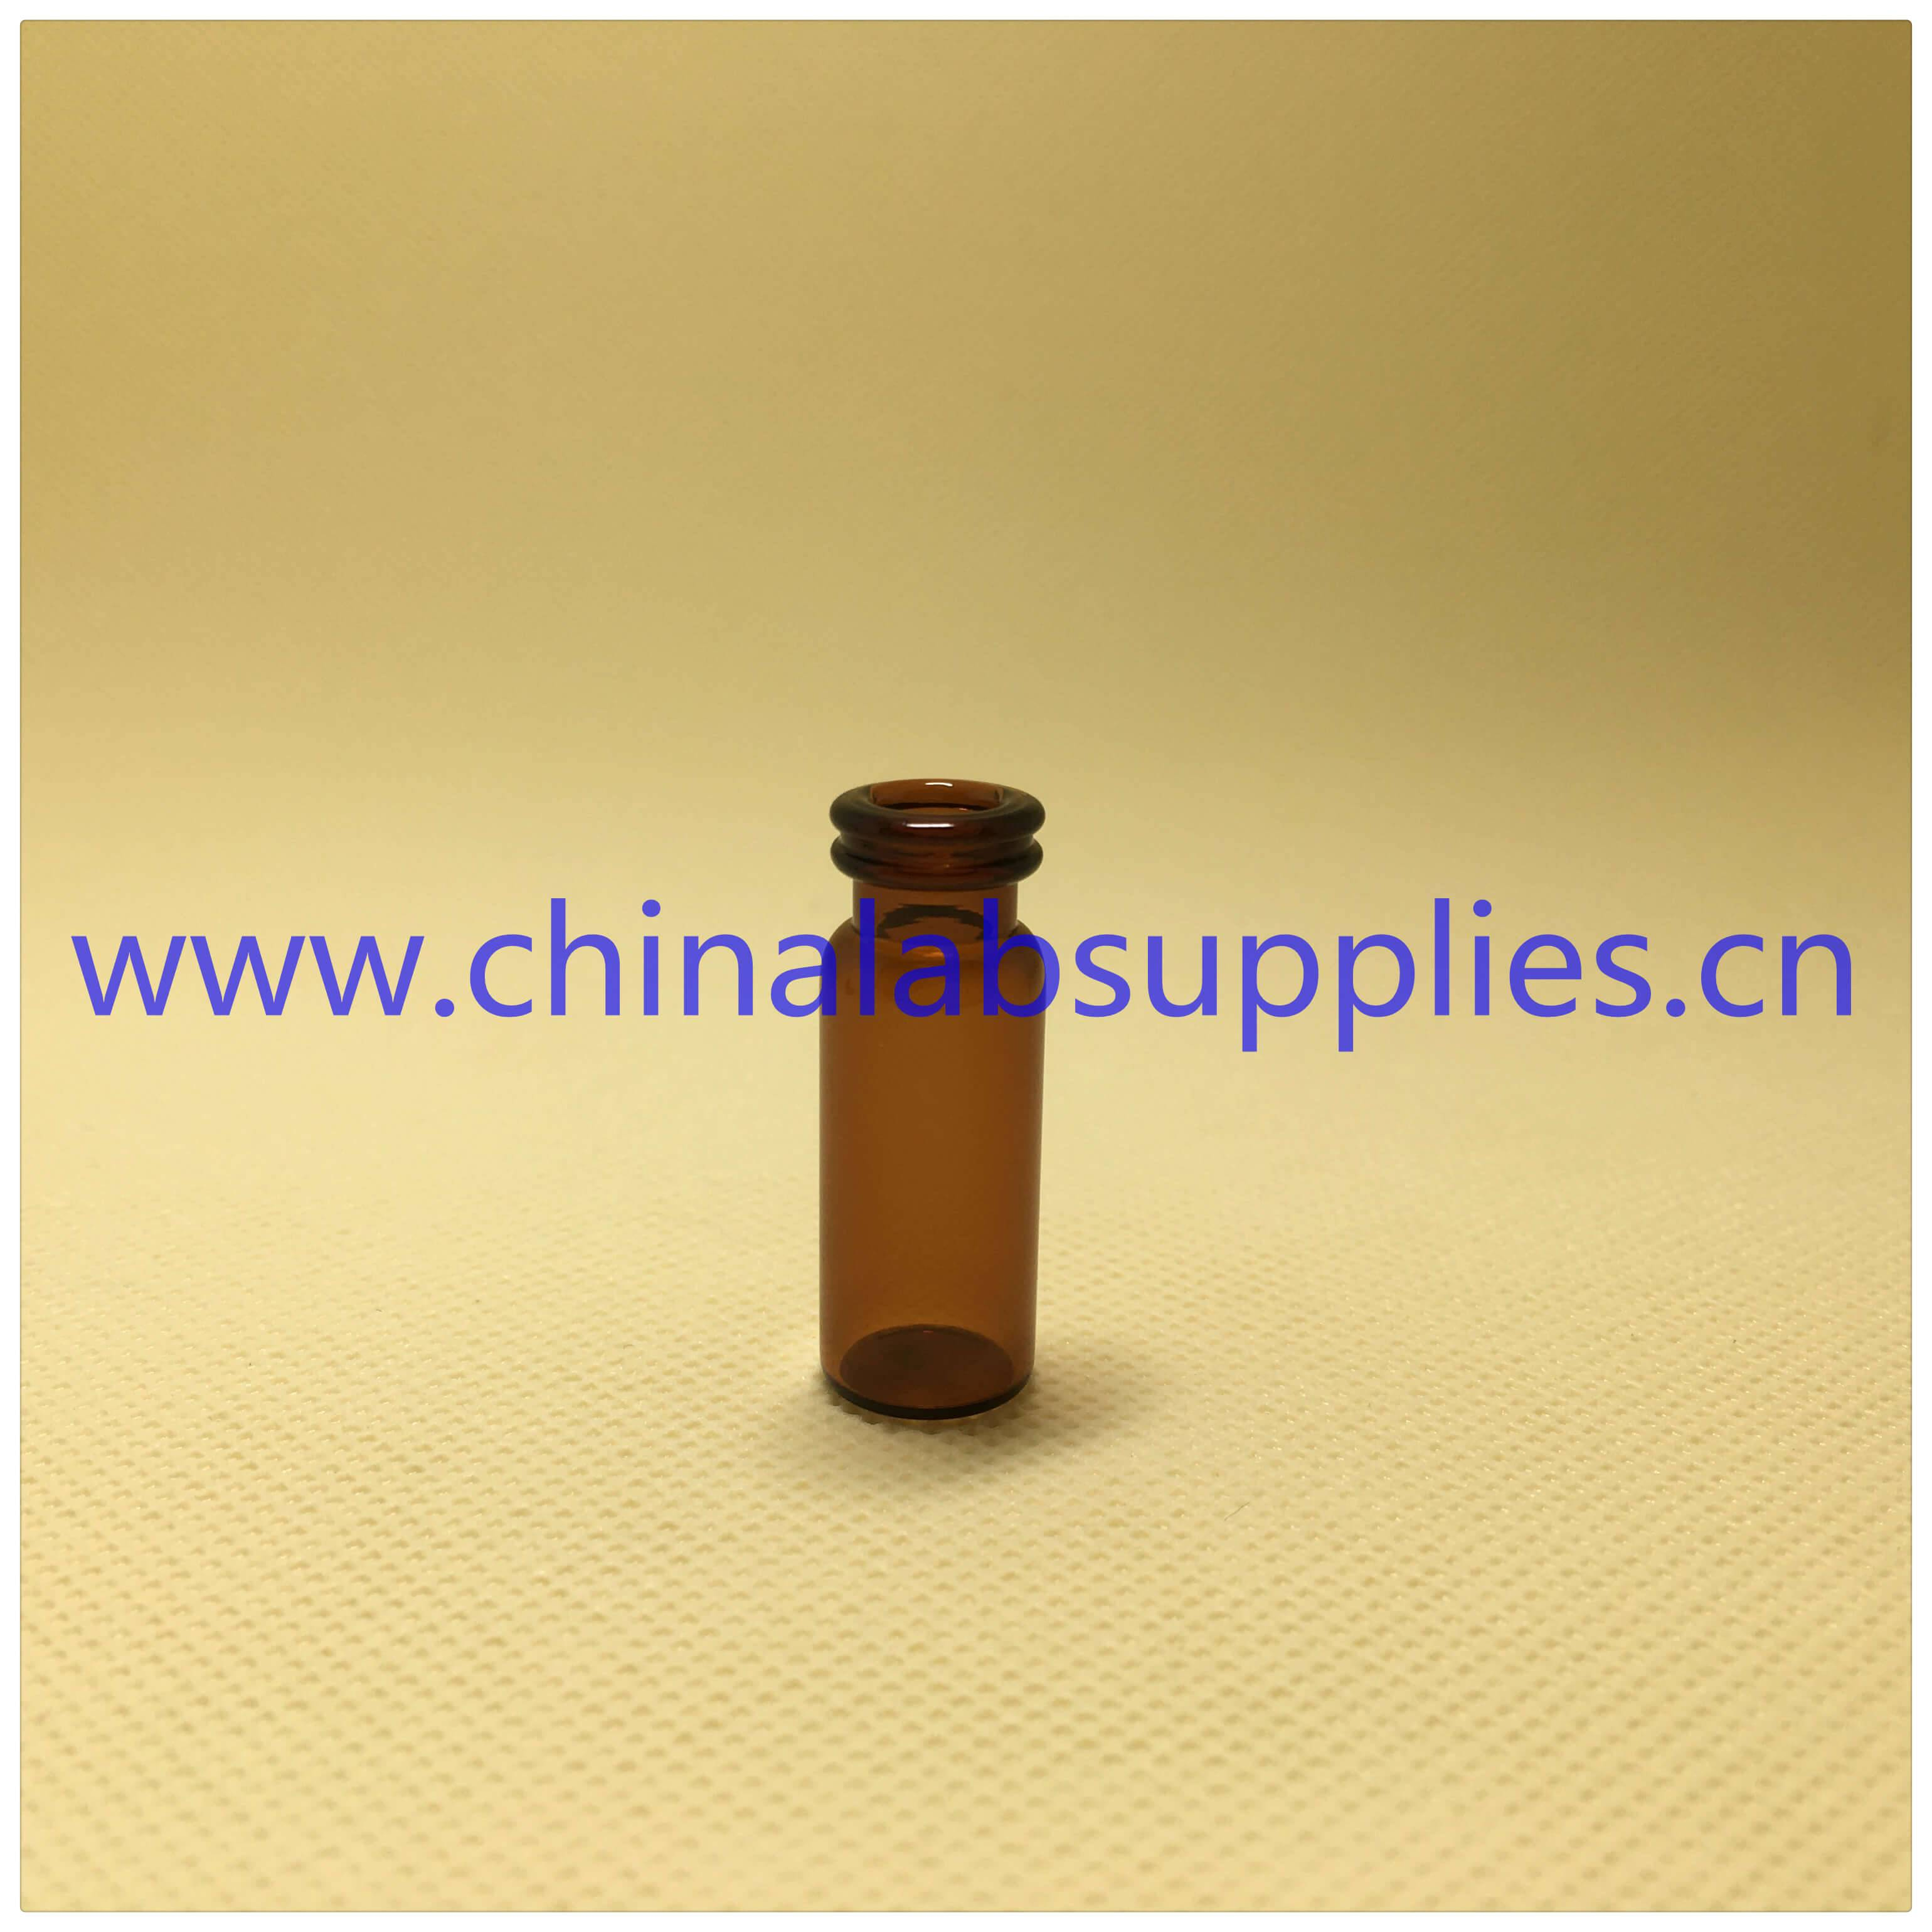 Top quality high recovery vials amber glass snap top vials V1035